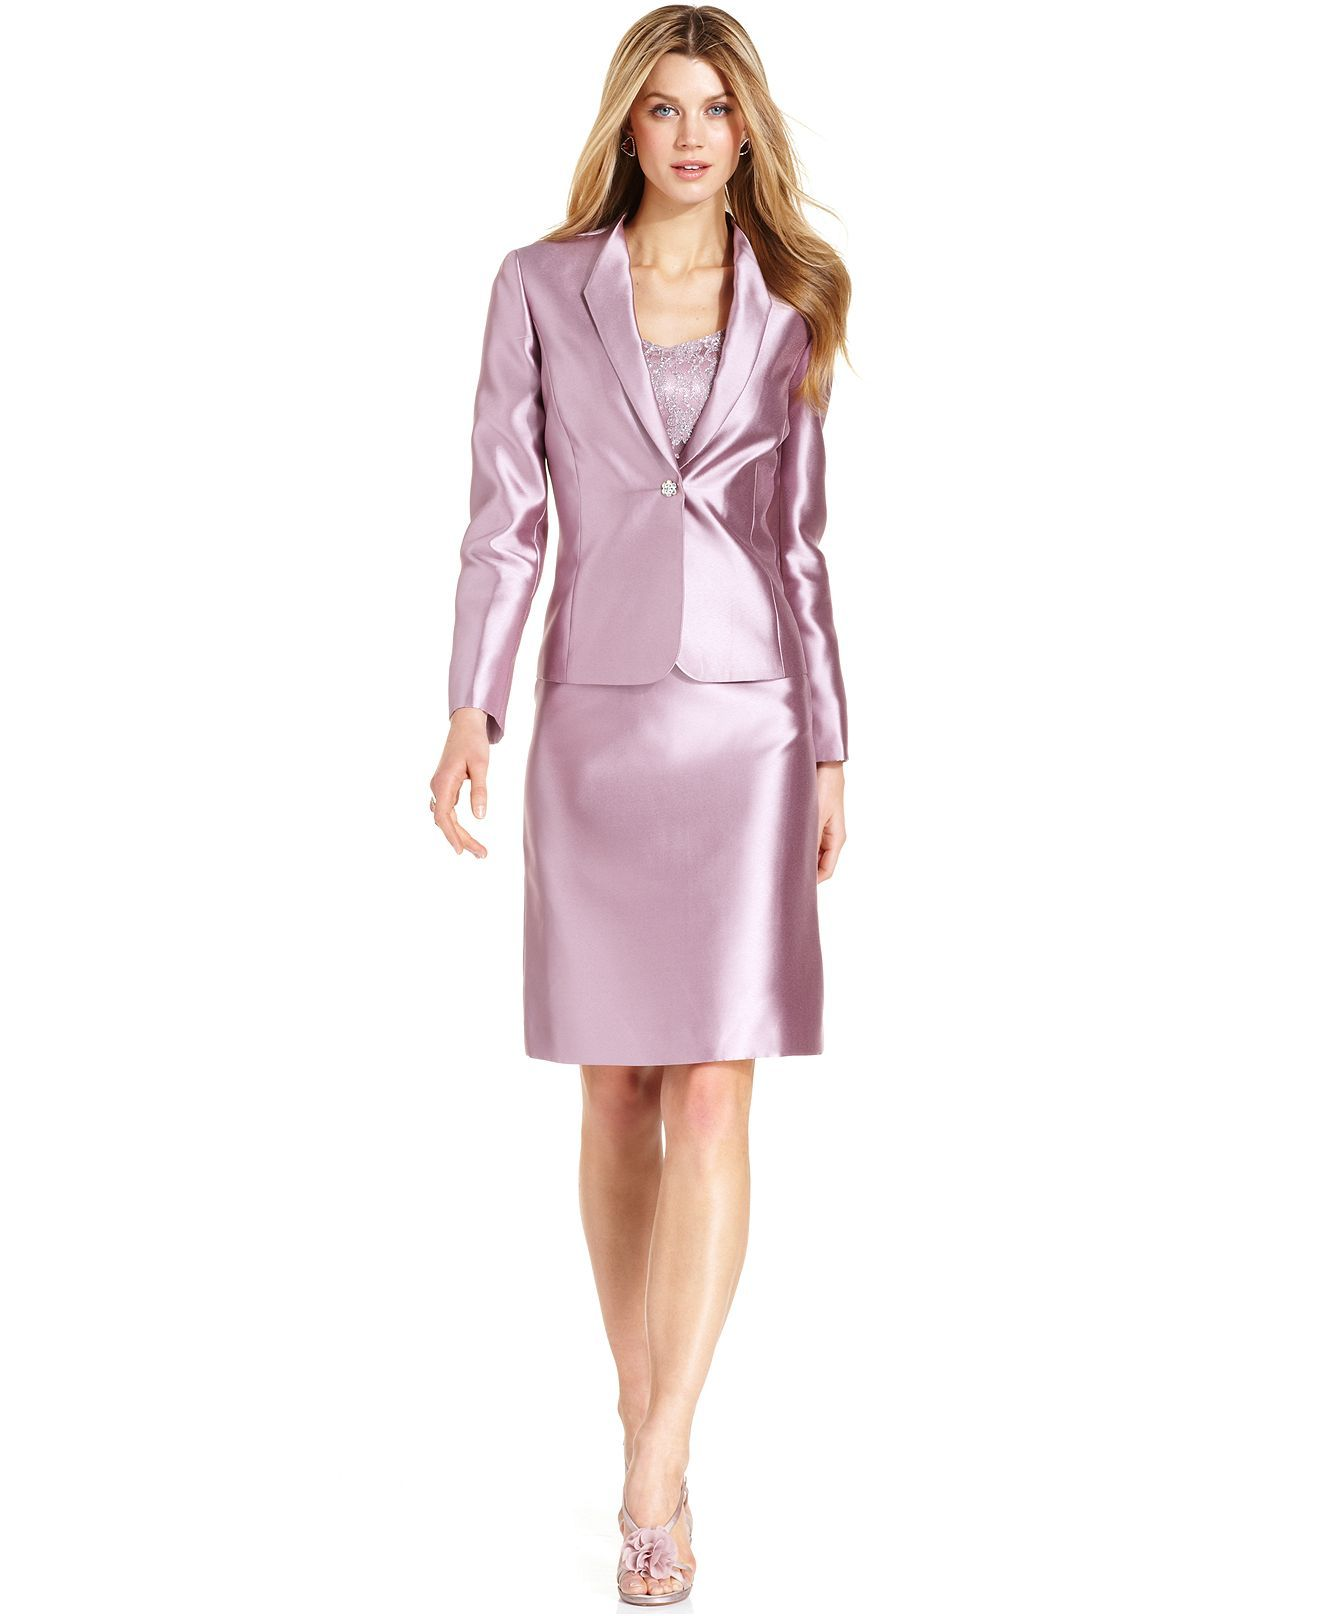 814321464dab Tahari ASL Lilac Suit | Women's Suits | Trendy suits, Skirt suit ...